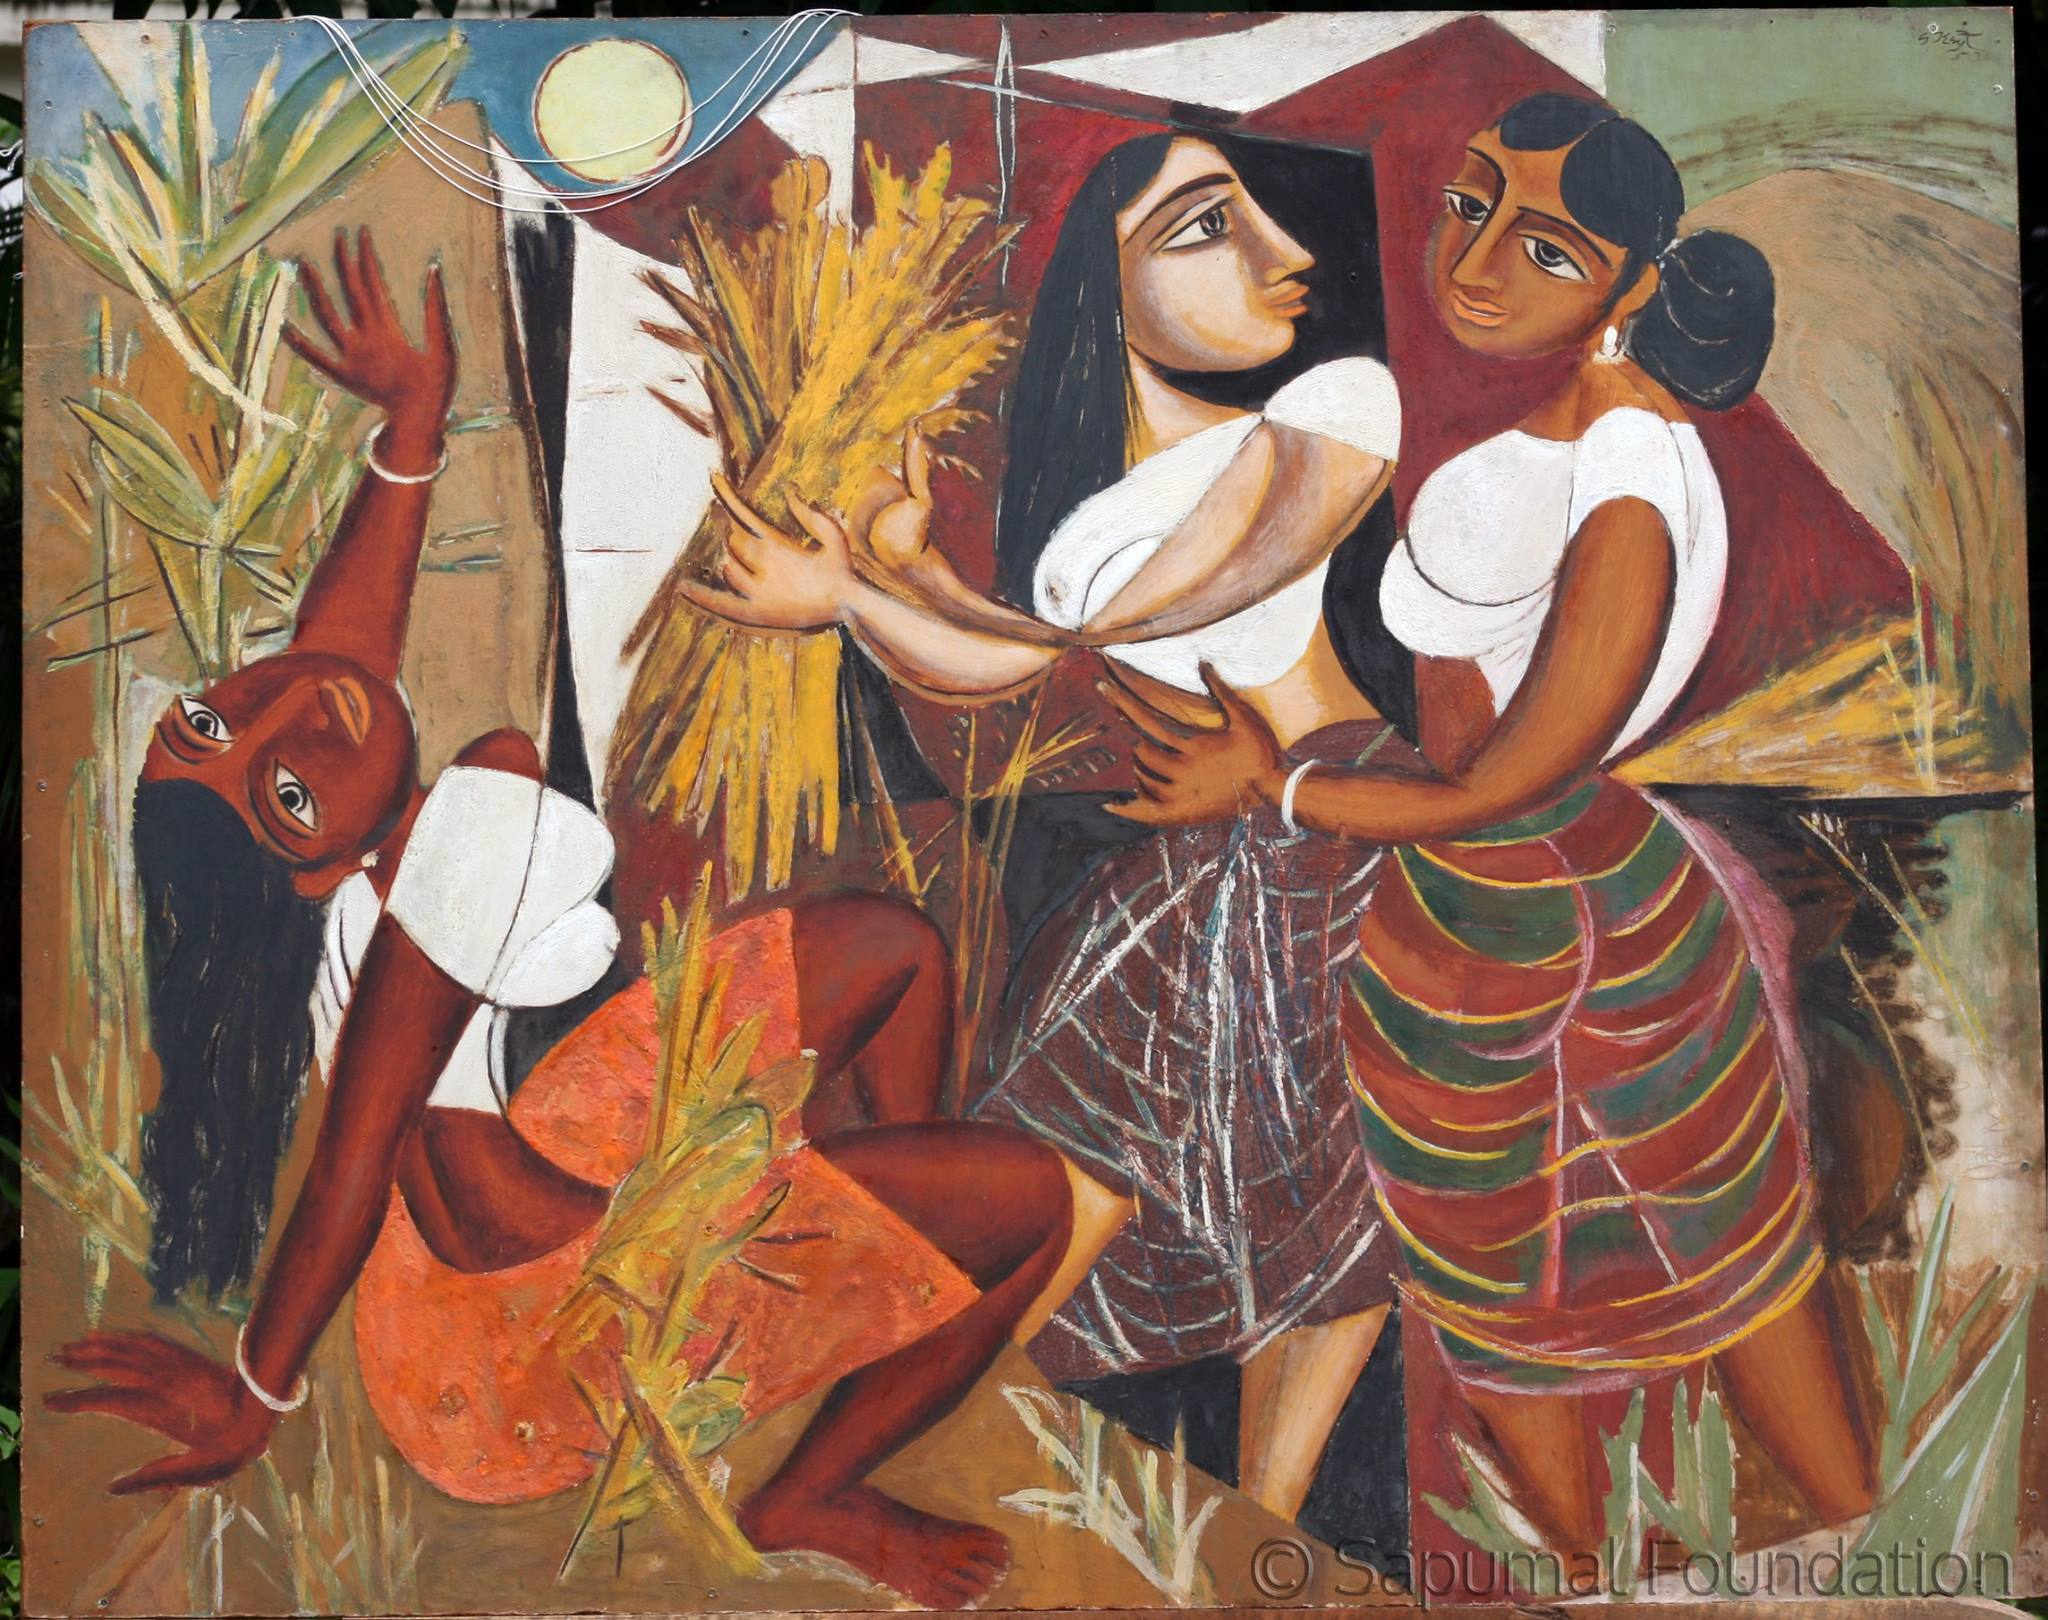 A George Keyt painting at the Sapumal Foundation